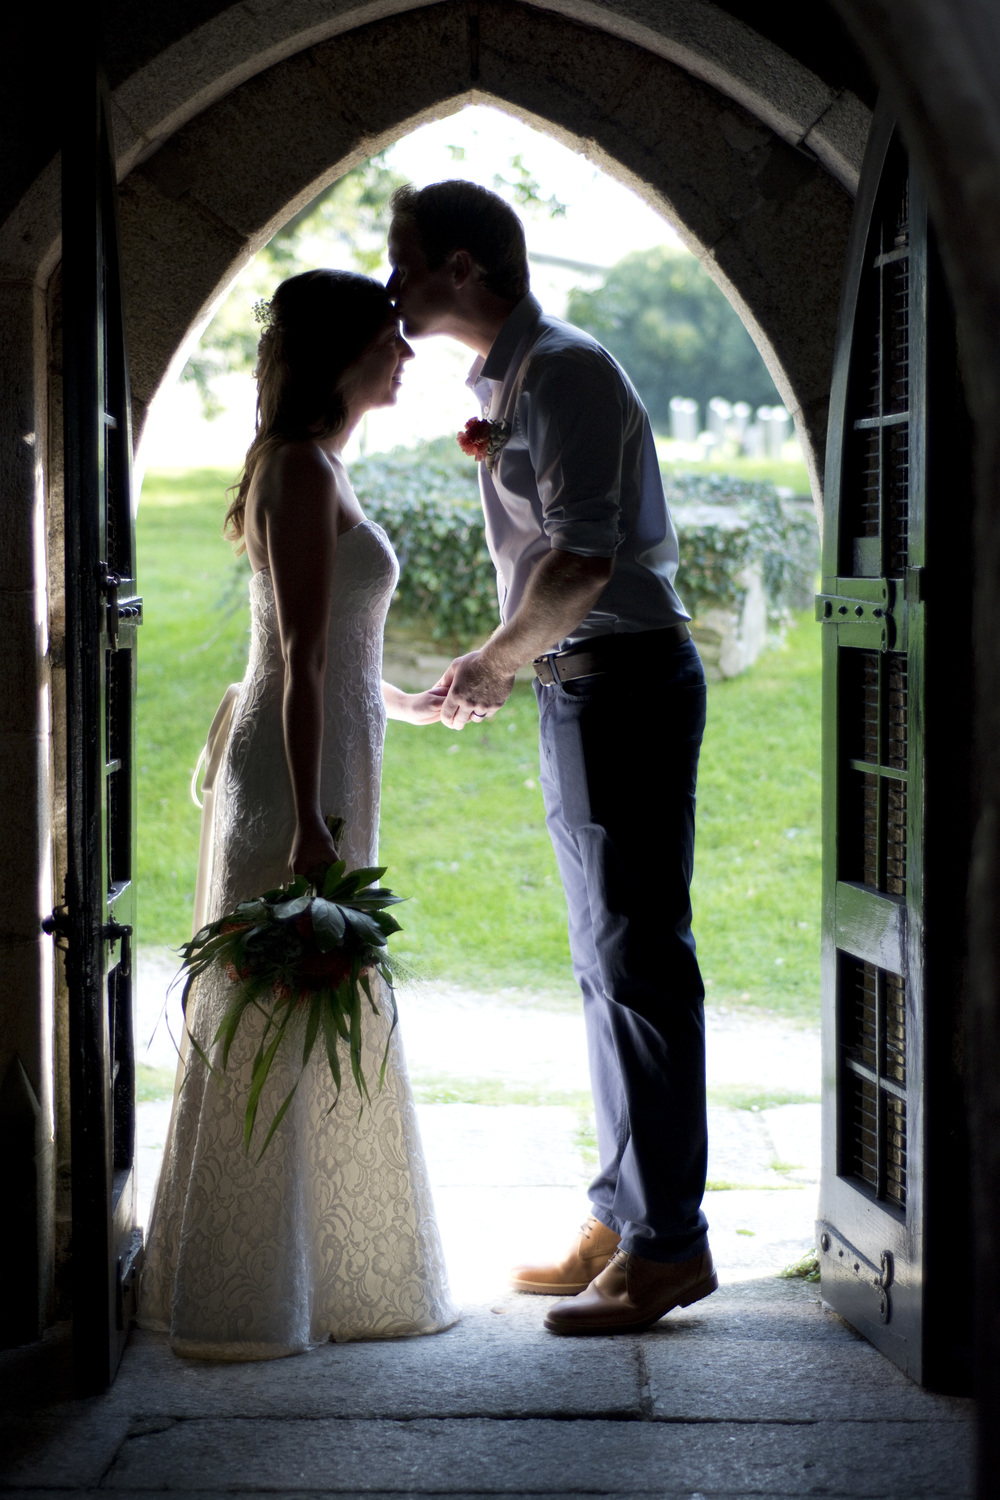 A moment together in the church doorway